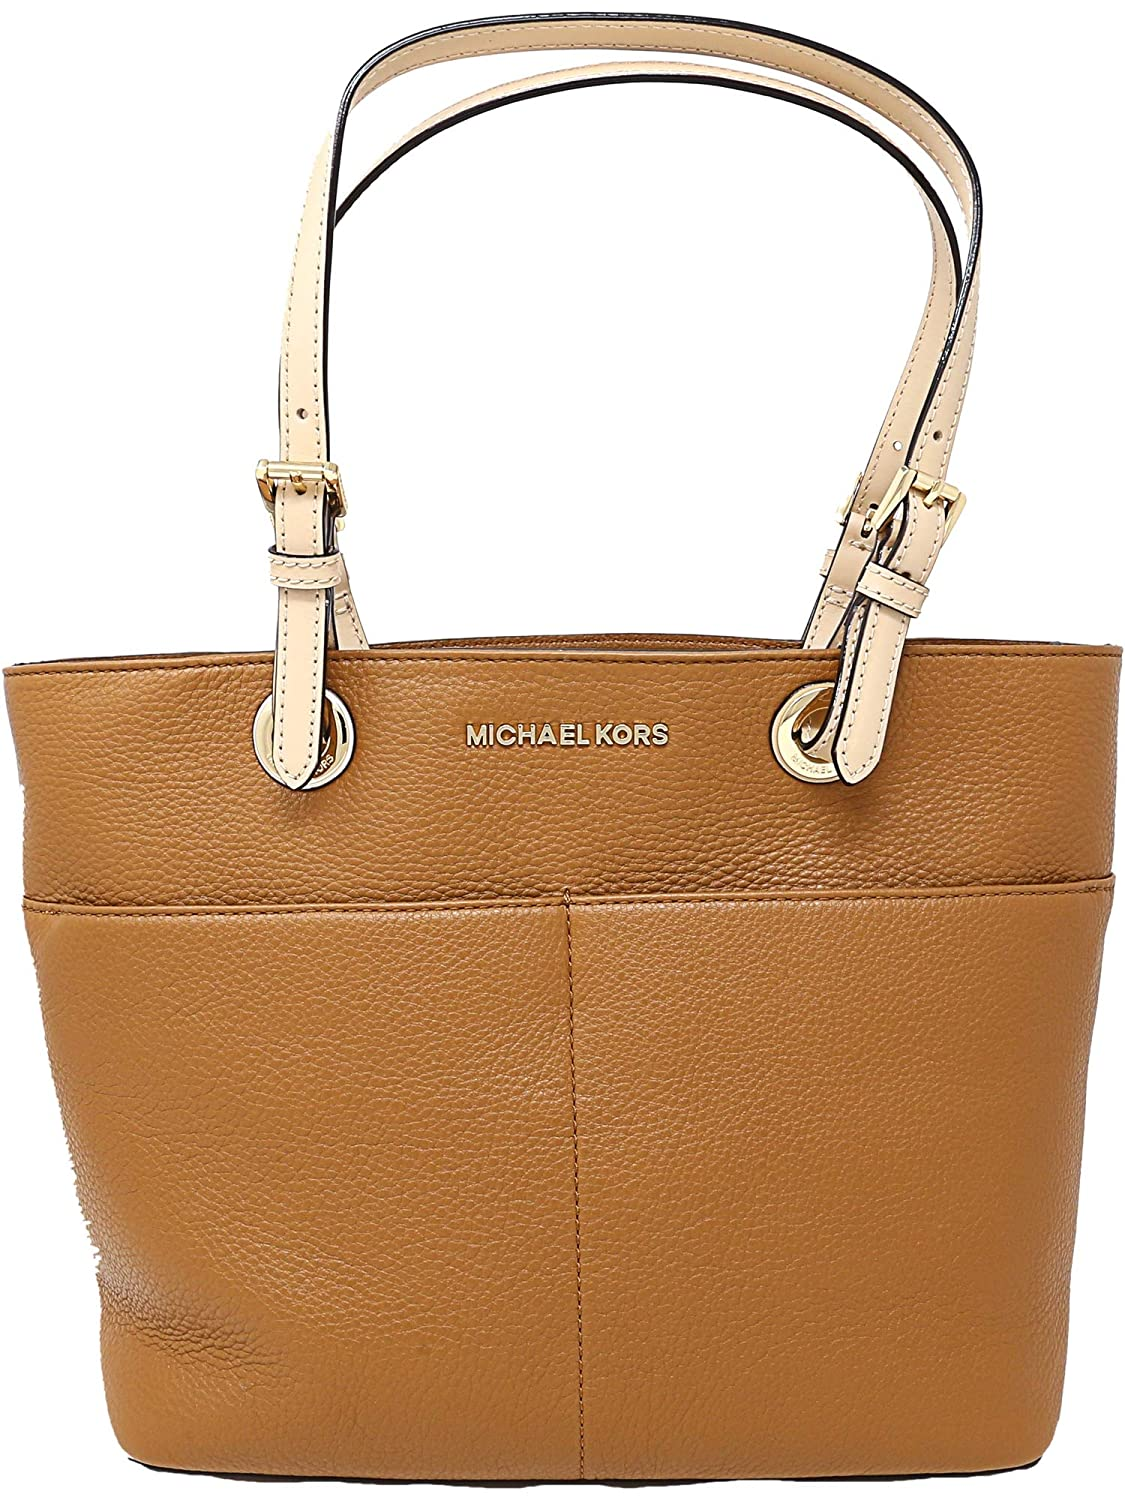 Michael Kors Womens Bedford Leather Top Handle Bag Tote Satchel Small Acorn Authentic Shoes